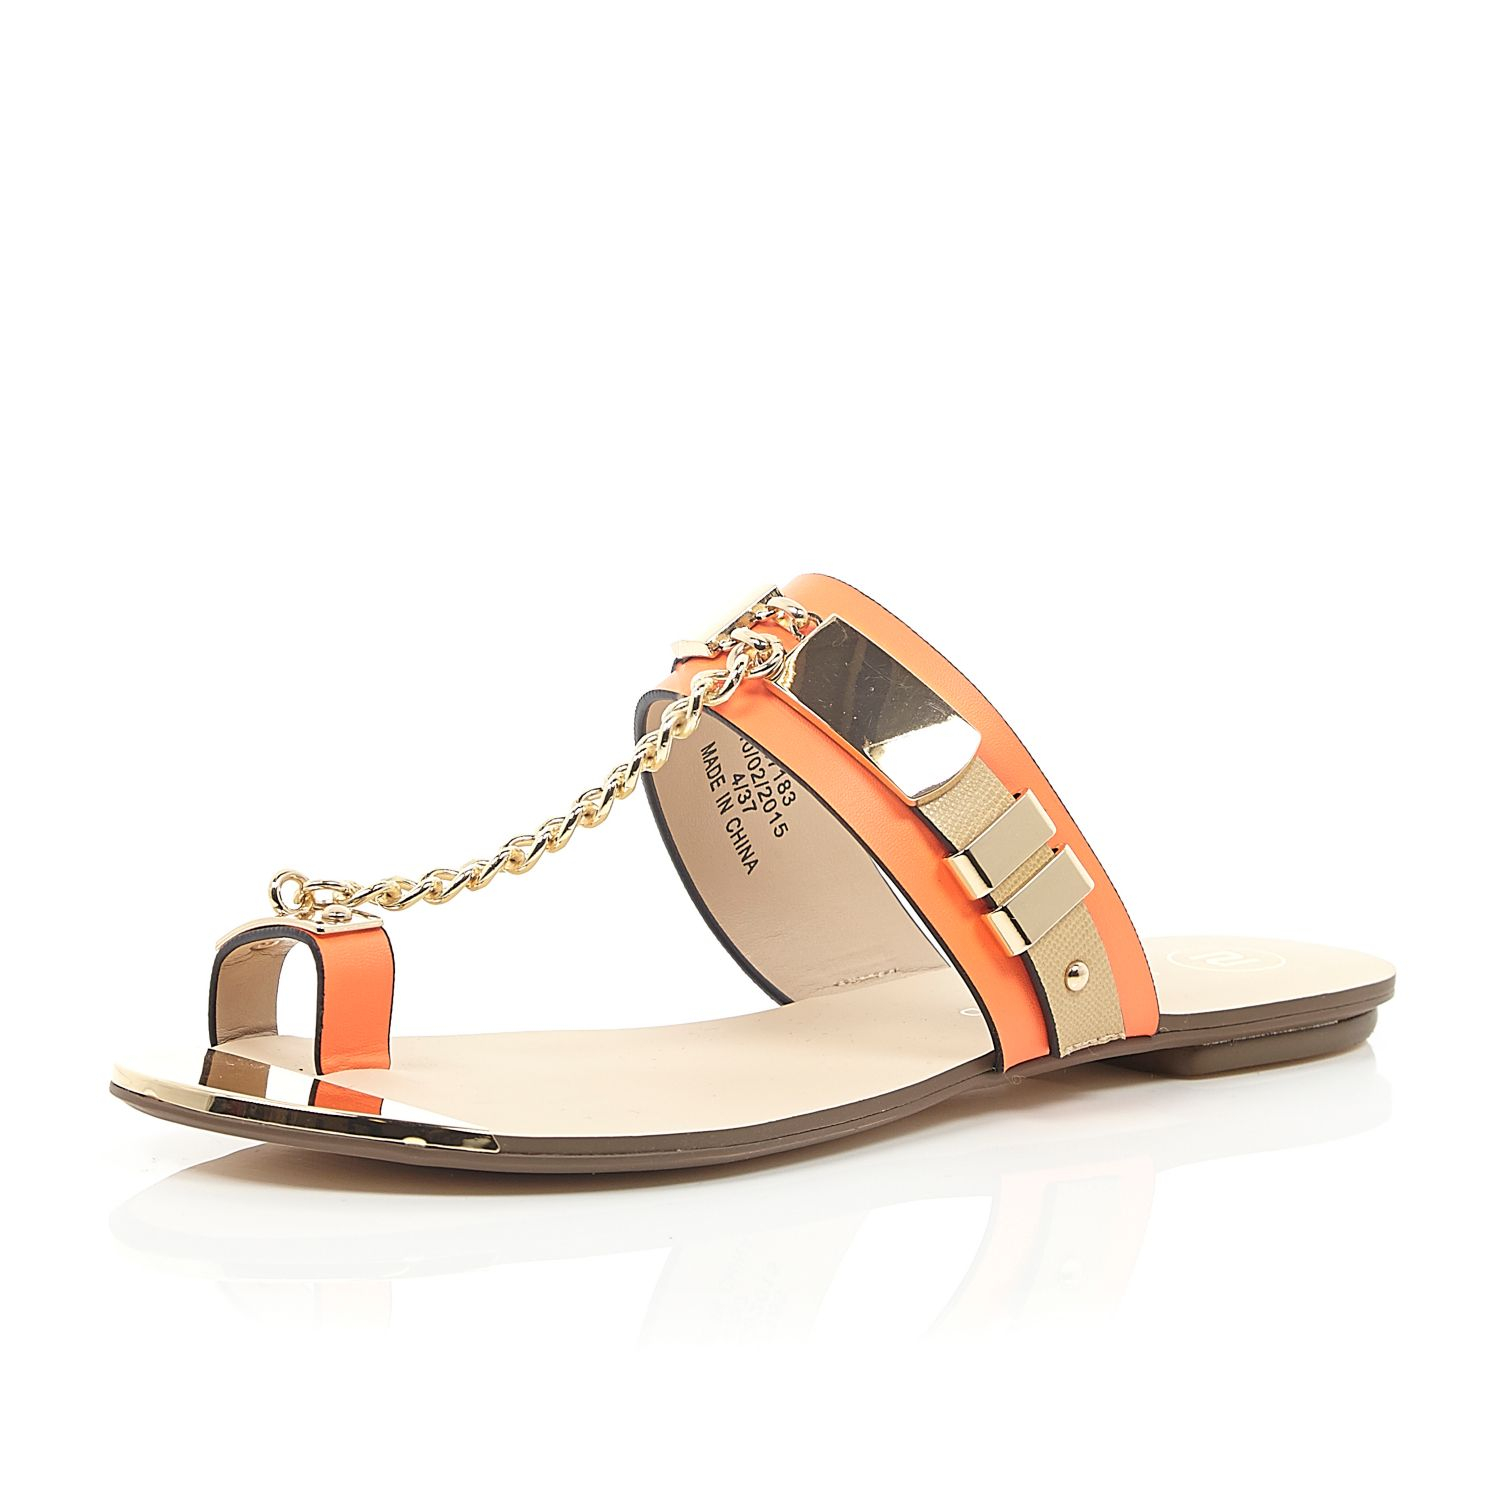 f01d636429f River Island Orange Snake Print Chain Sandals in Orange - Lyst